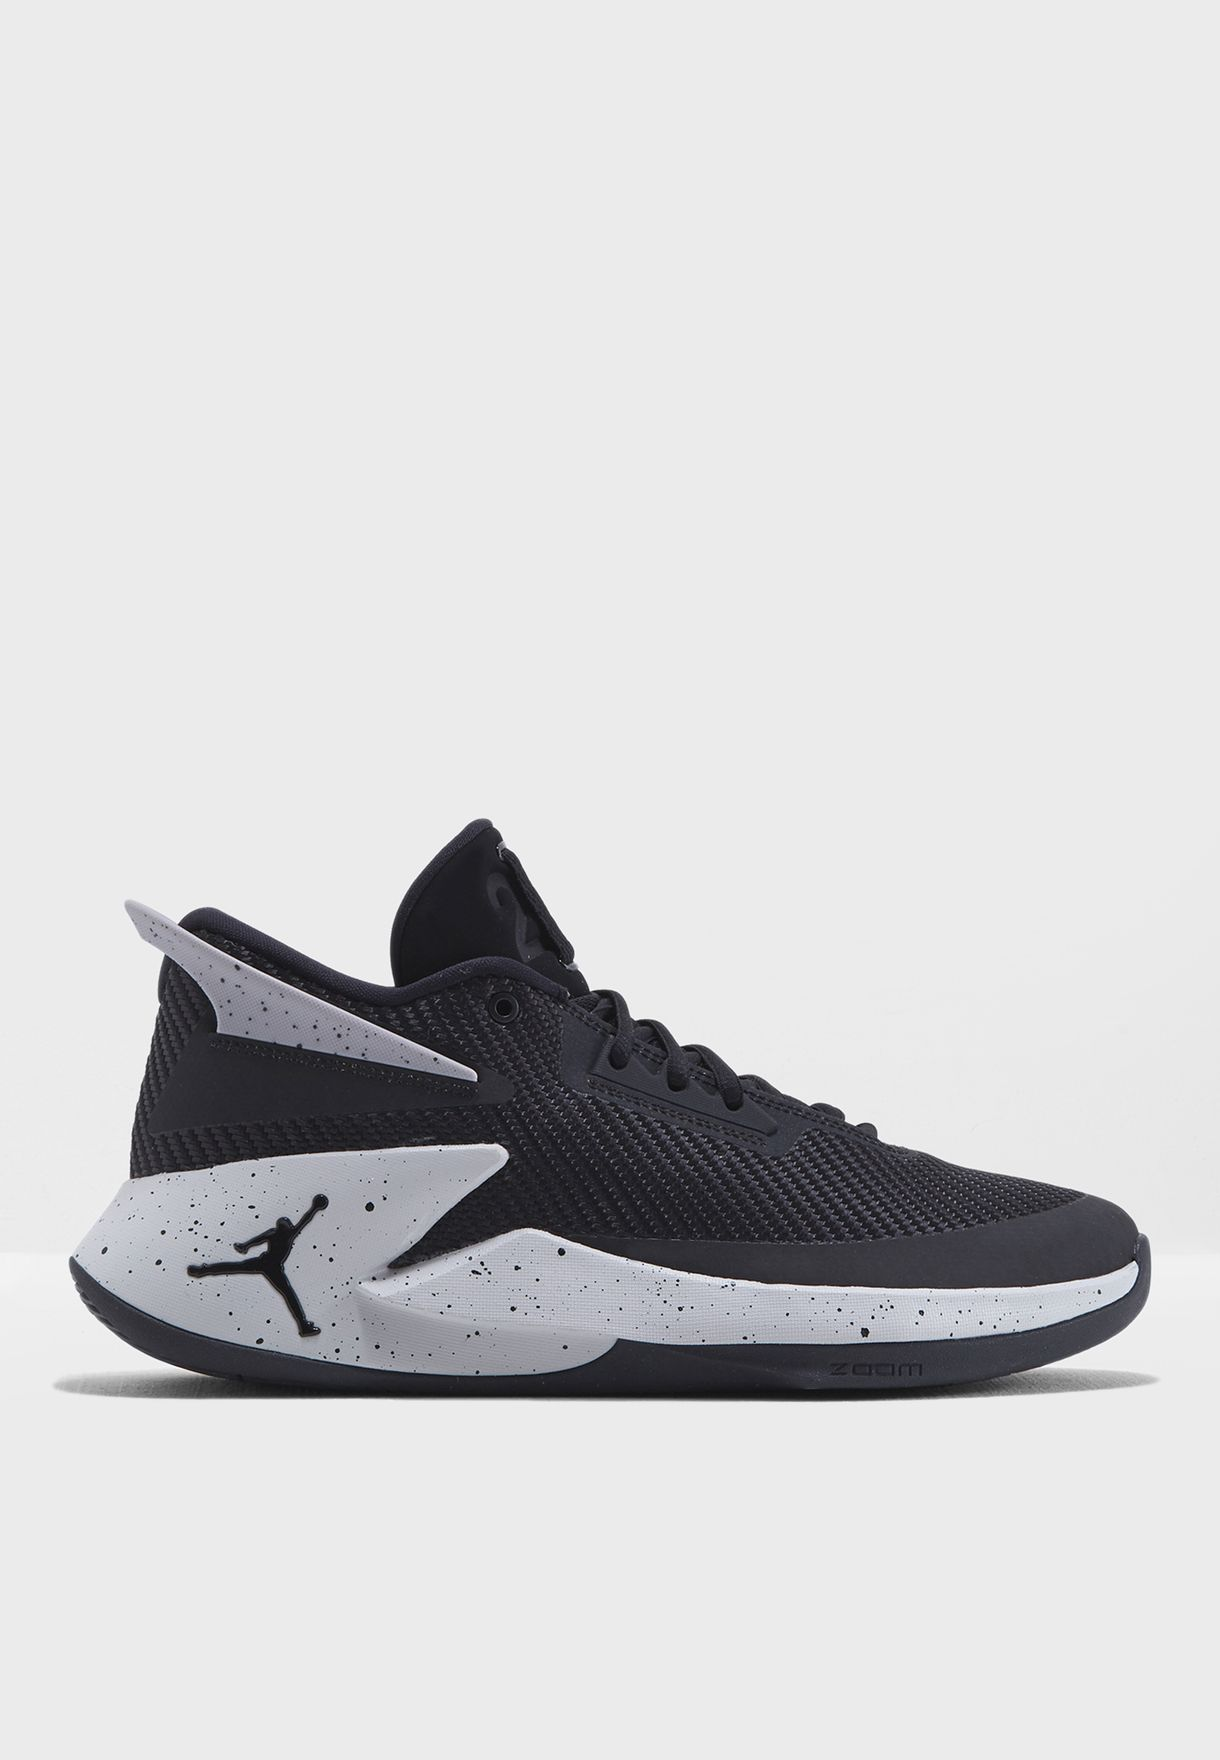 6d8bd5f2c34b Shop Nike black Jordan Fly Lockdown AJ9499-010 for Men in UAE ...